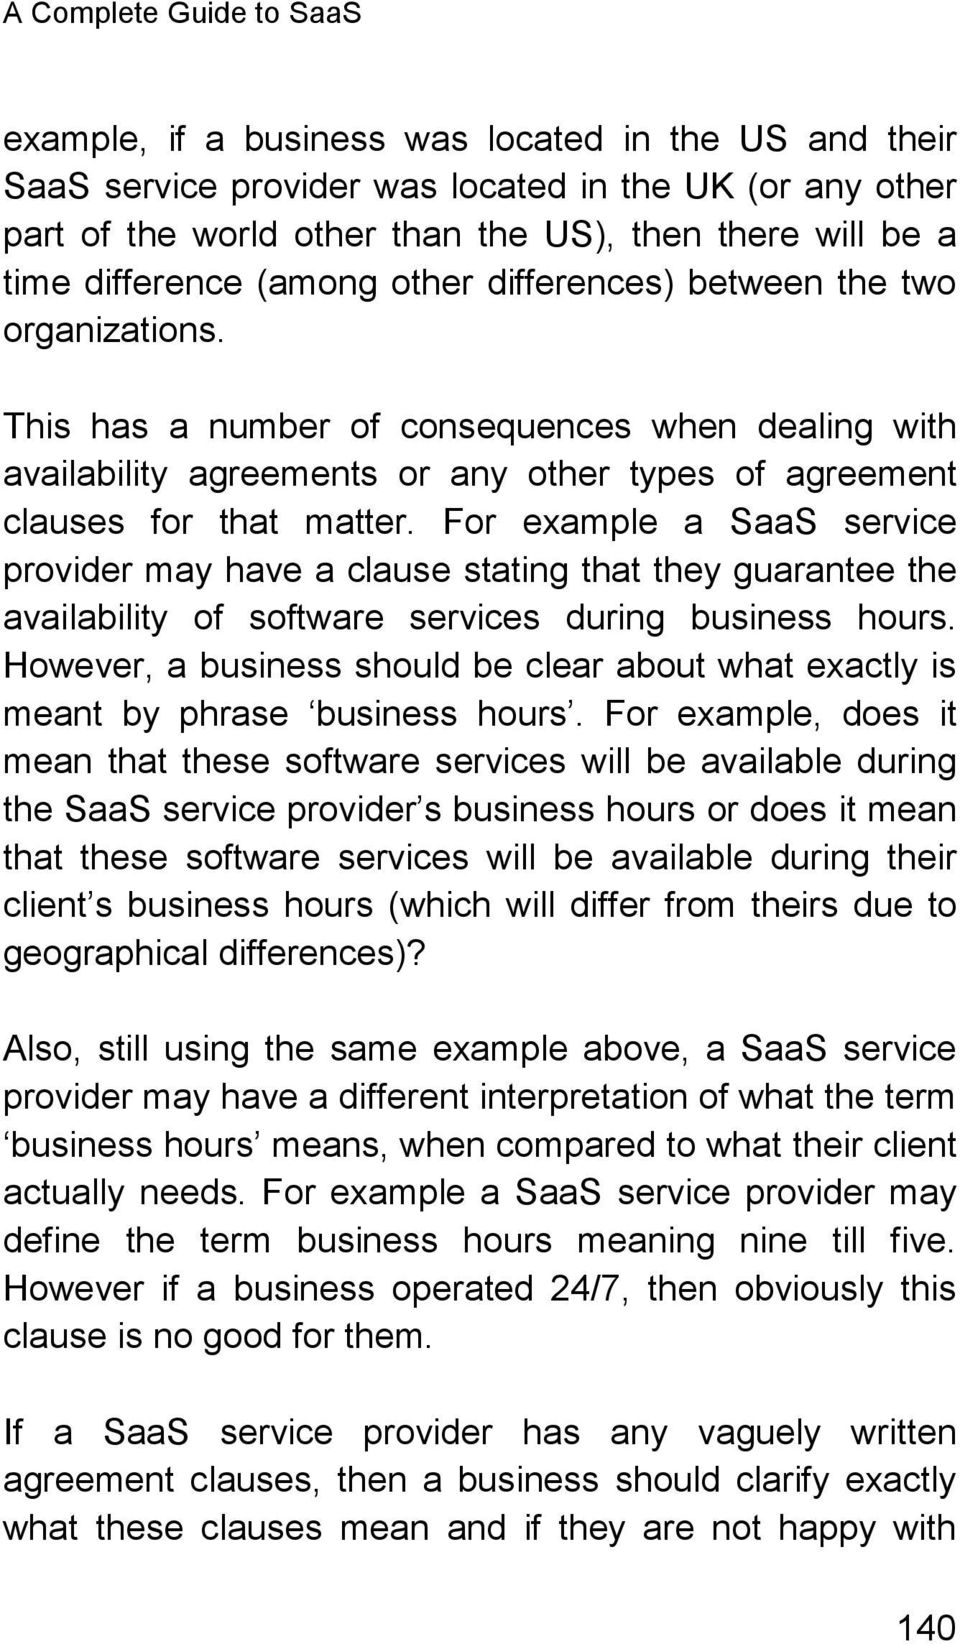 For example a SaaS service provider may have a clause stating that they guarantee the availability of software services during business hours.